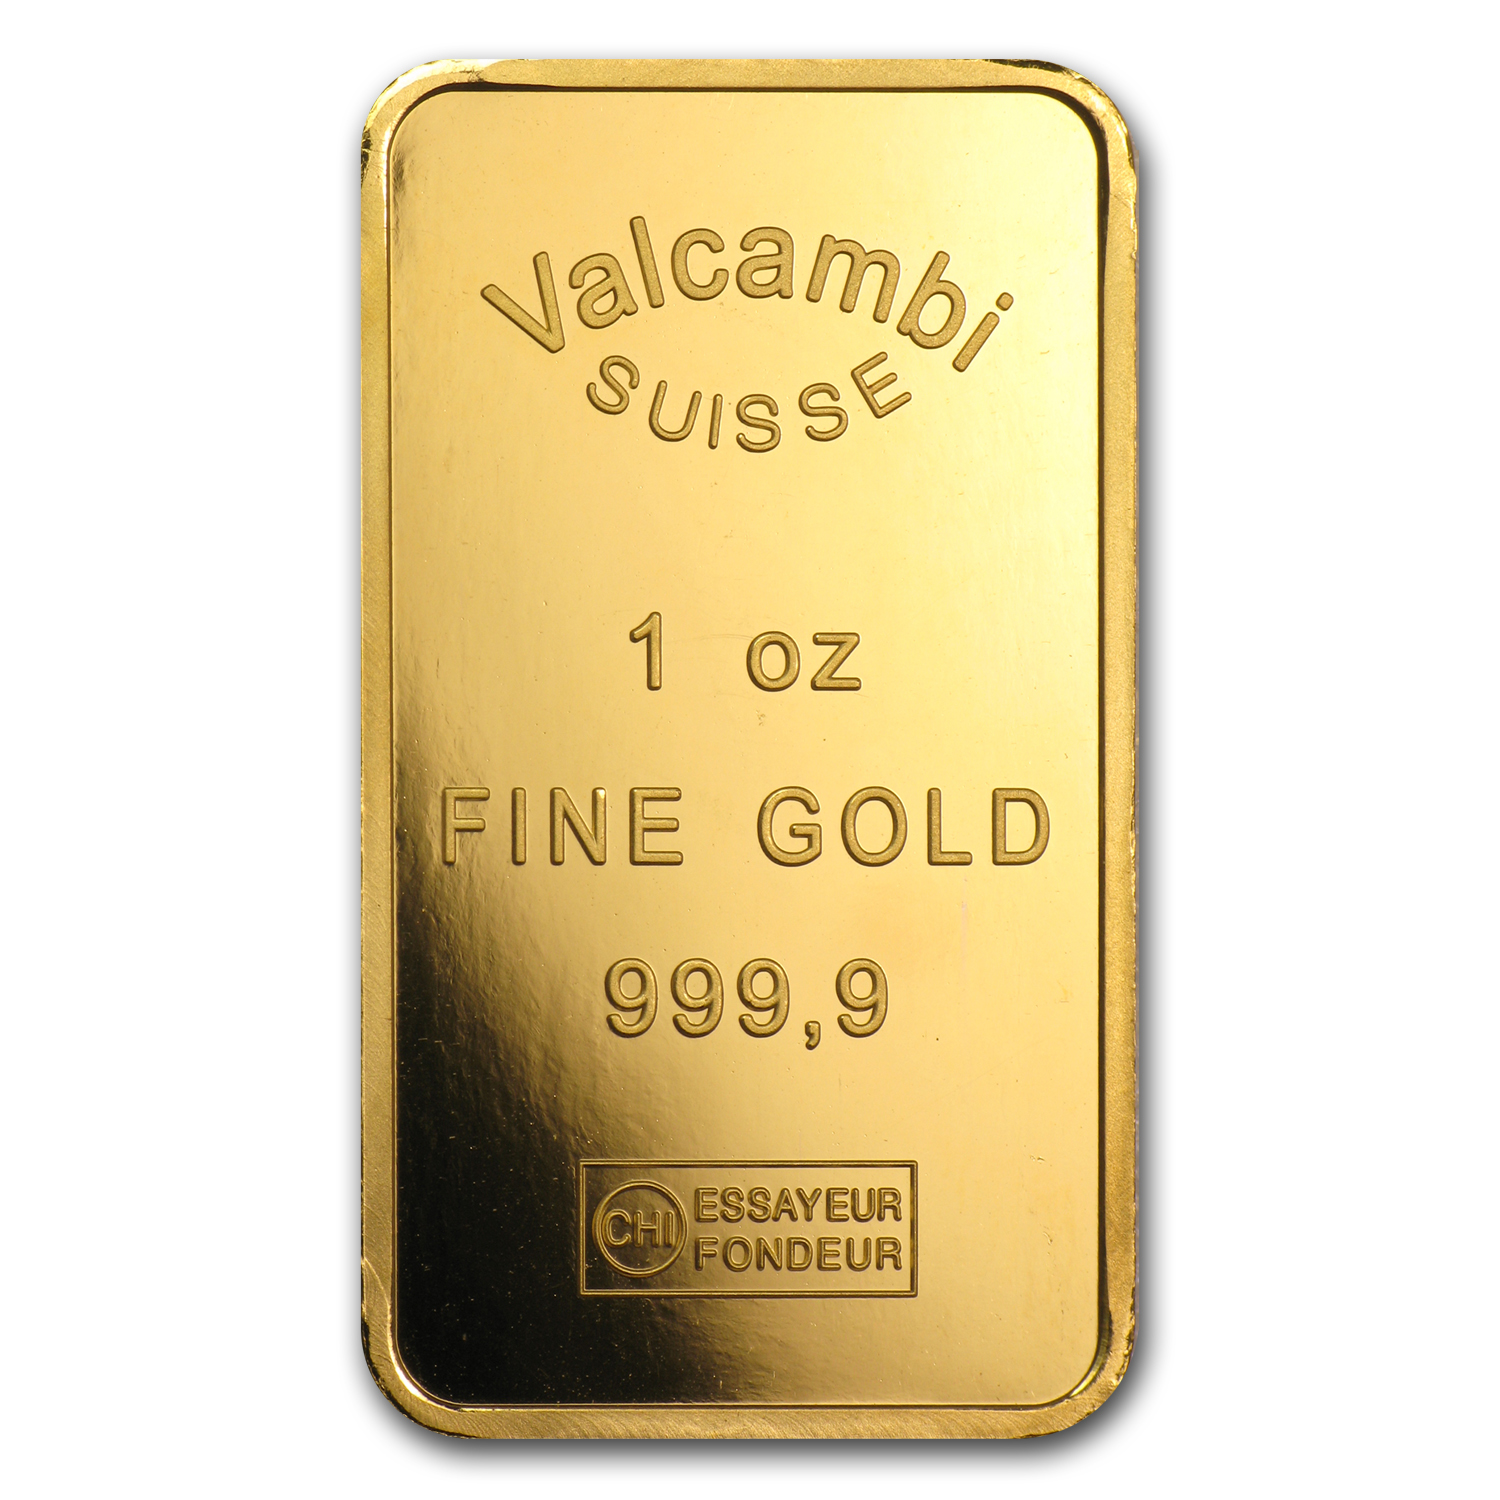 1 oz Gold Bars - Scotiabank